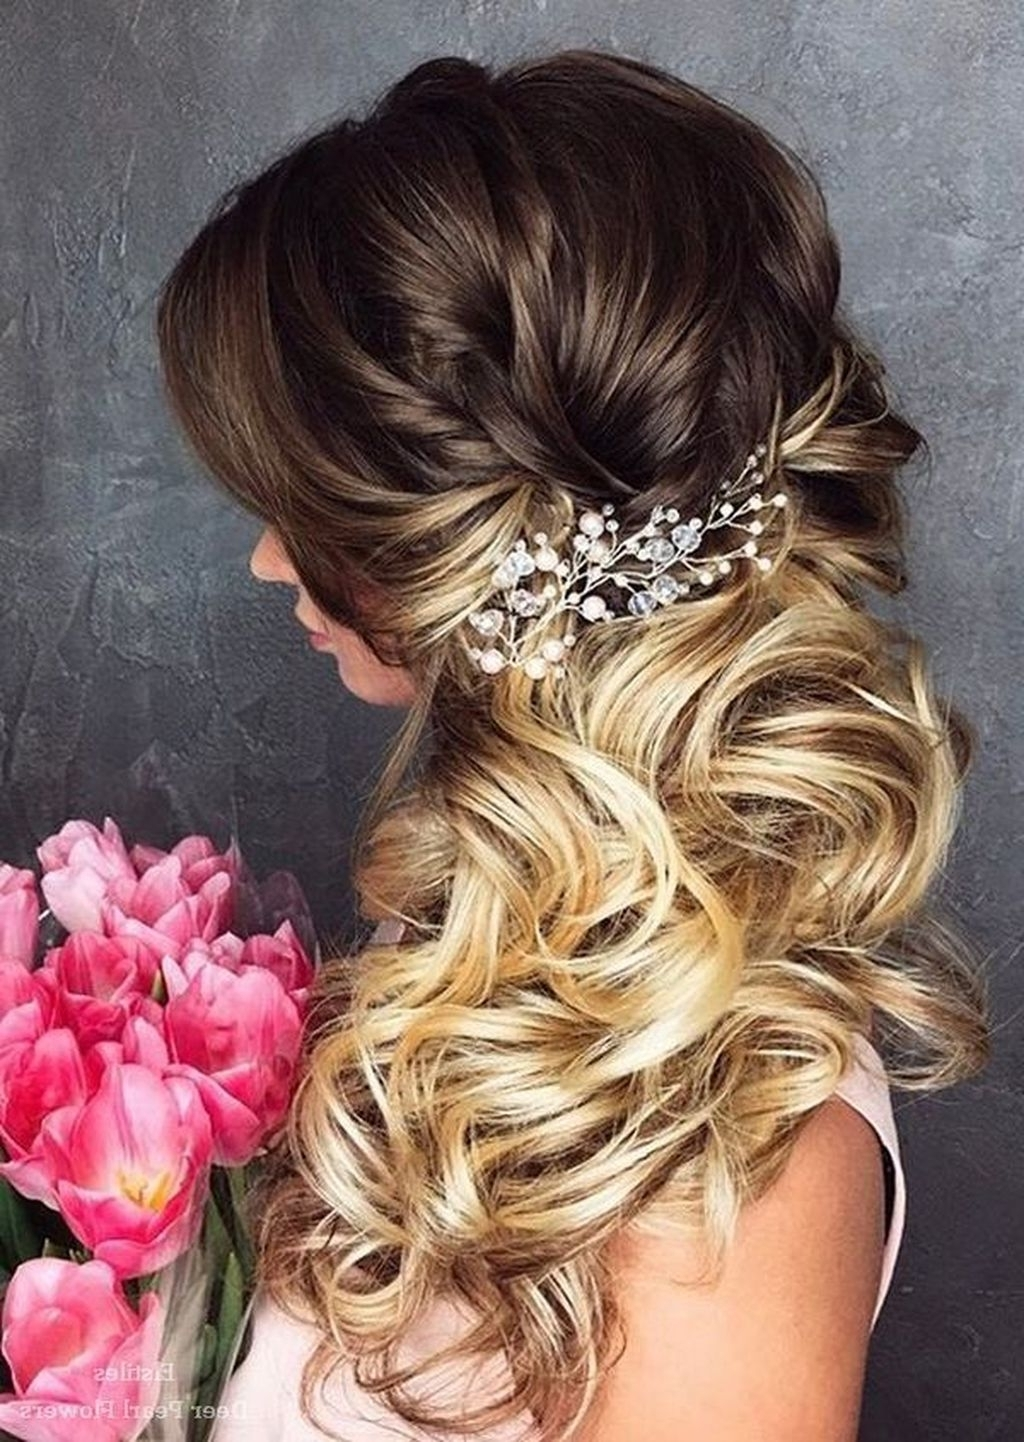 Recent Modern Wedding Hairstyles Throughout 36 The Best Modern Wedding Hairstyles Ideas For Long Hair – Fashionmoe (View 13 of 15)